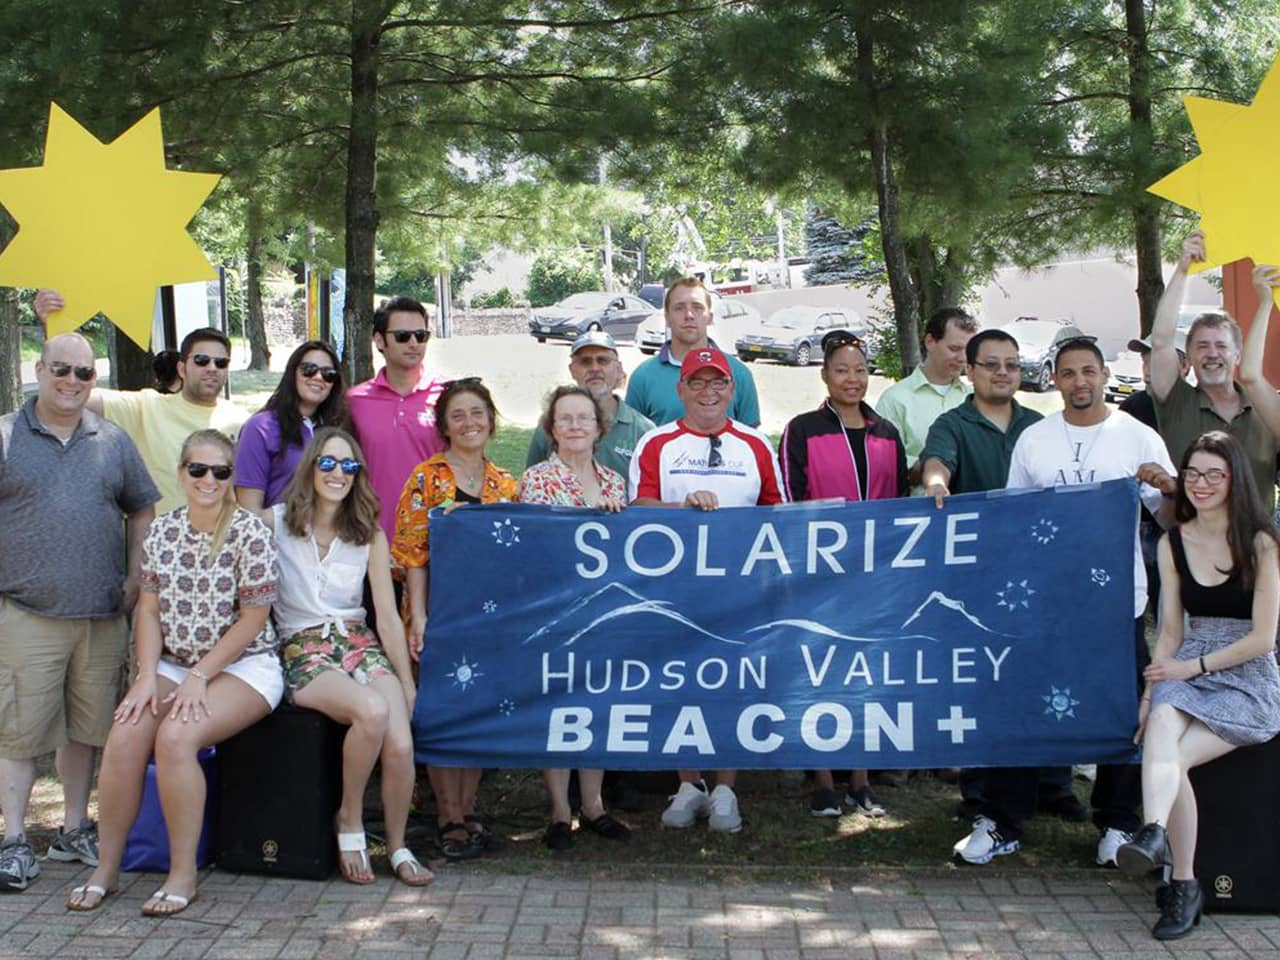 Solarize N.Y. Community Solarize Campaigns Lead To 900 Solar Projects